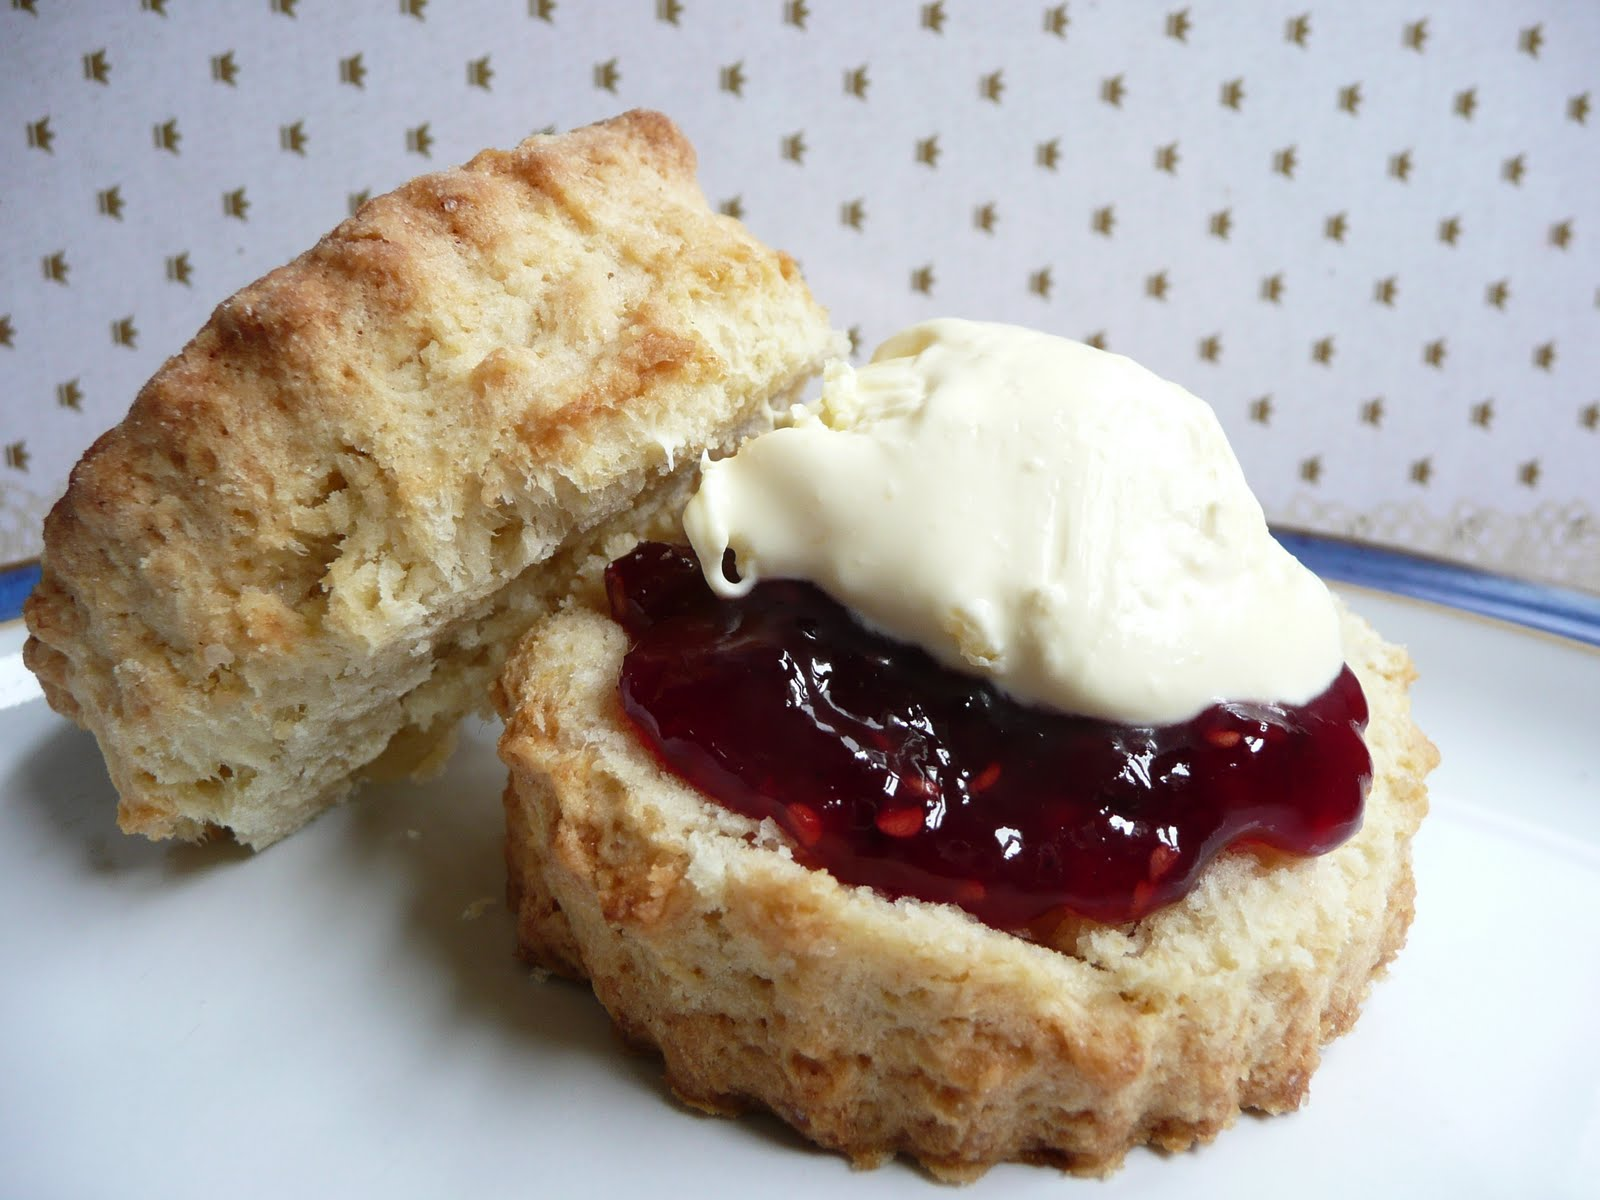 Scones are most often served with tea, but if you're tucking into some ...